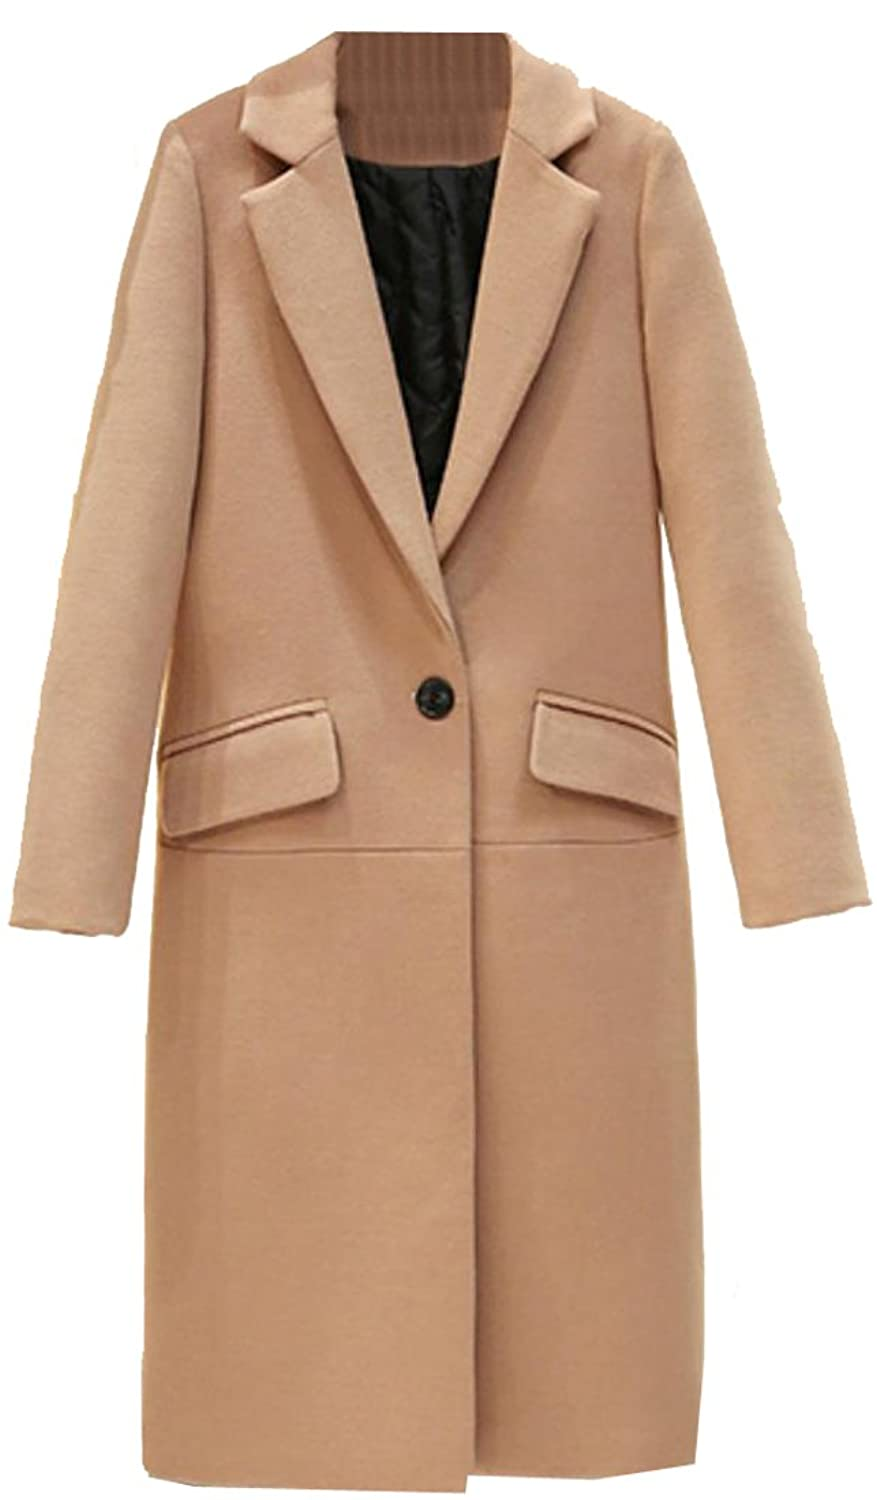 NQ Women's Elegant Long Sleeve Slim Fit Wool Blend Coat